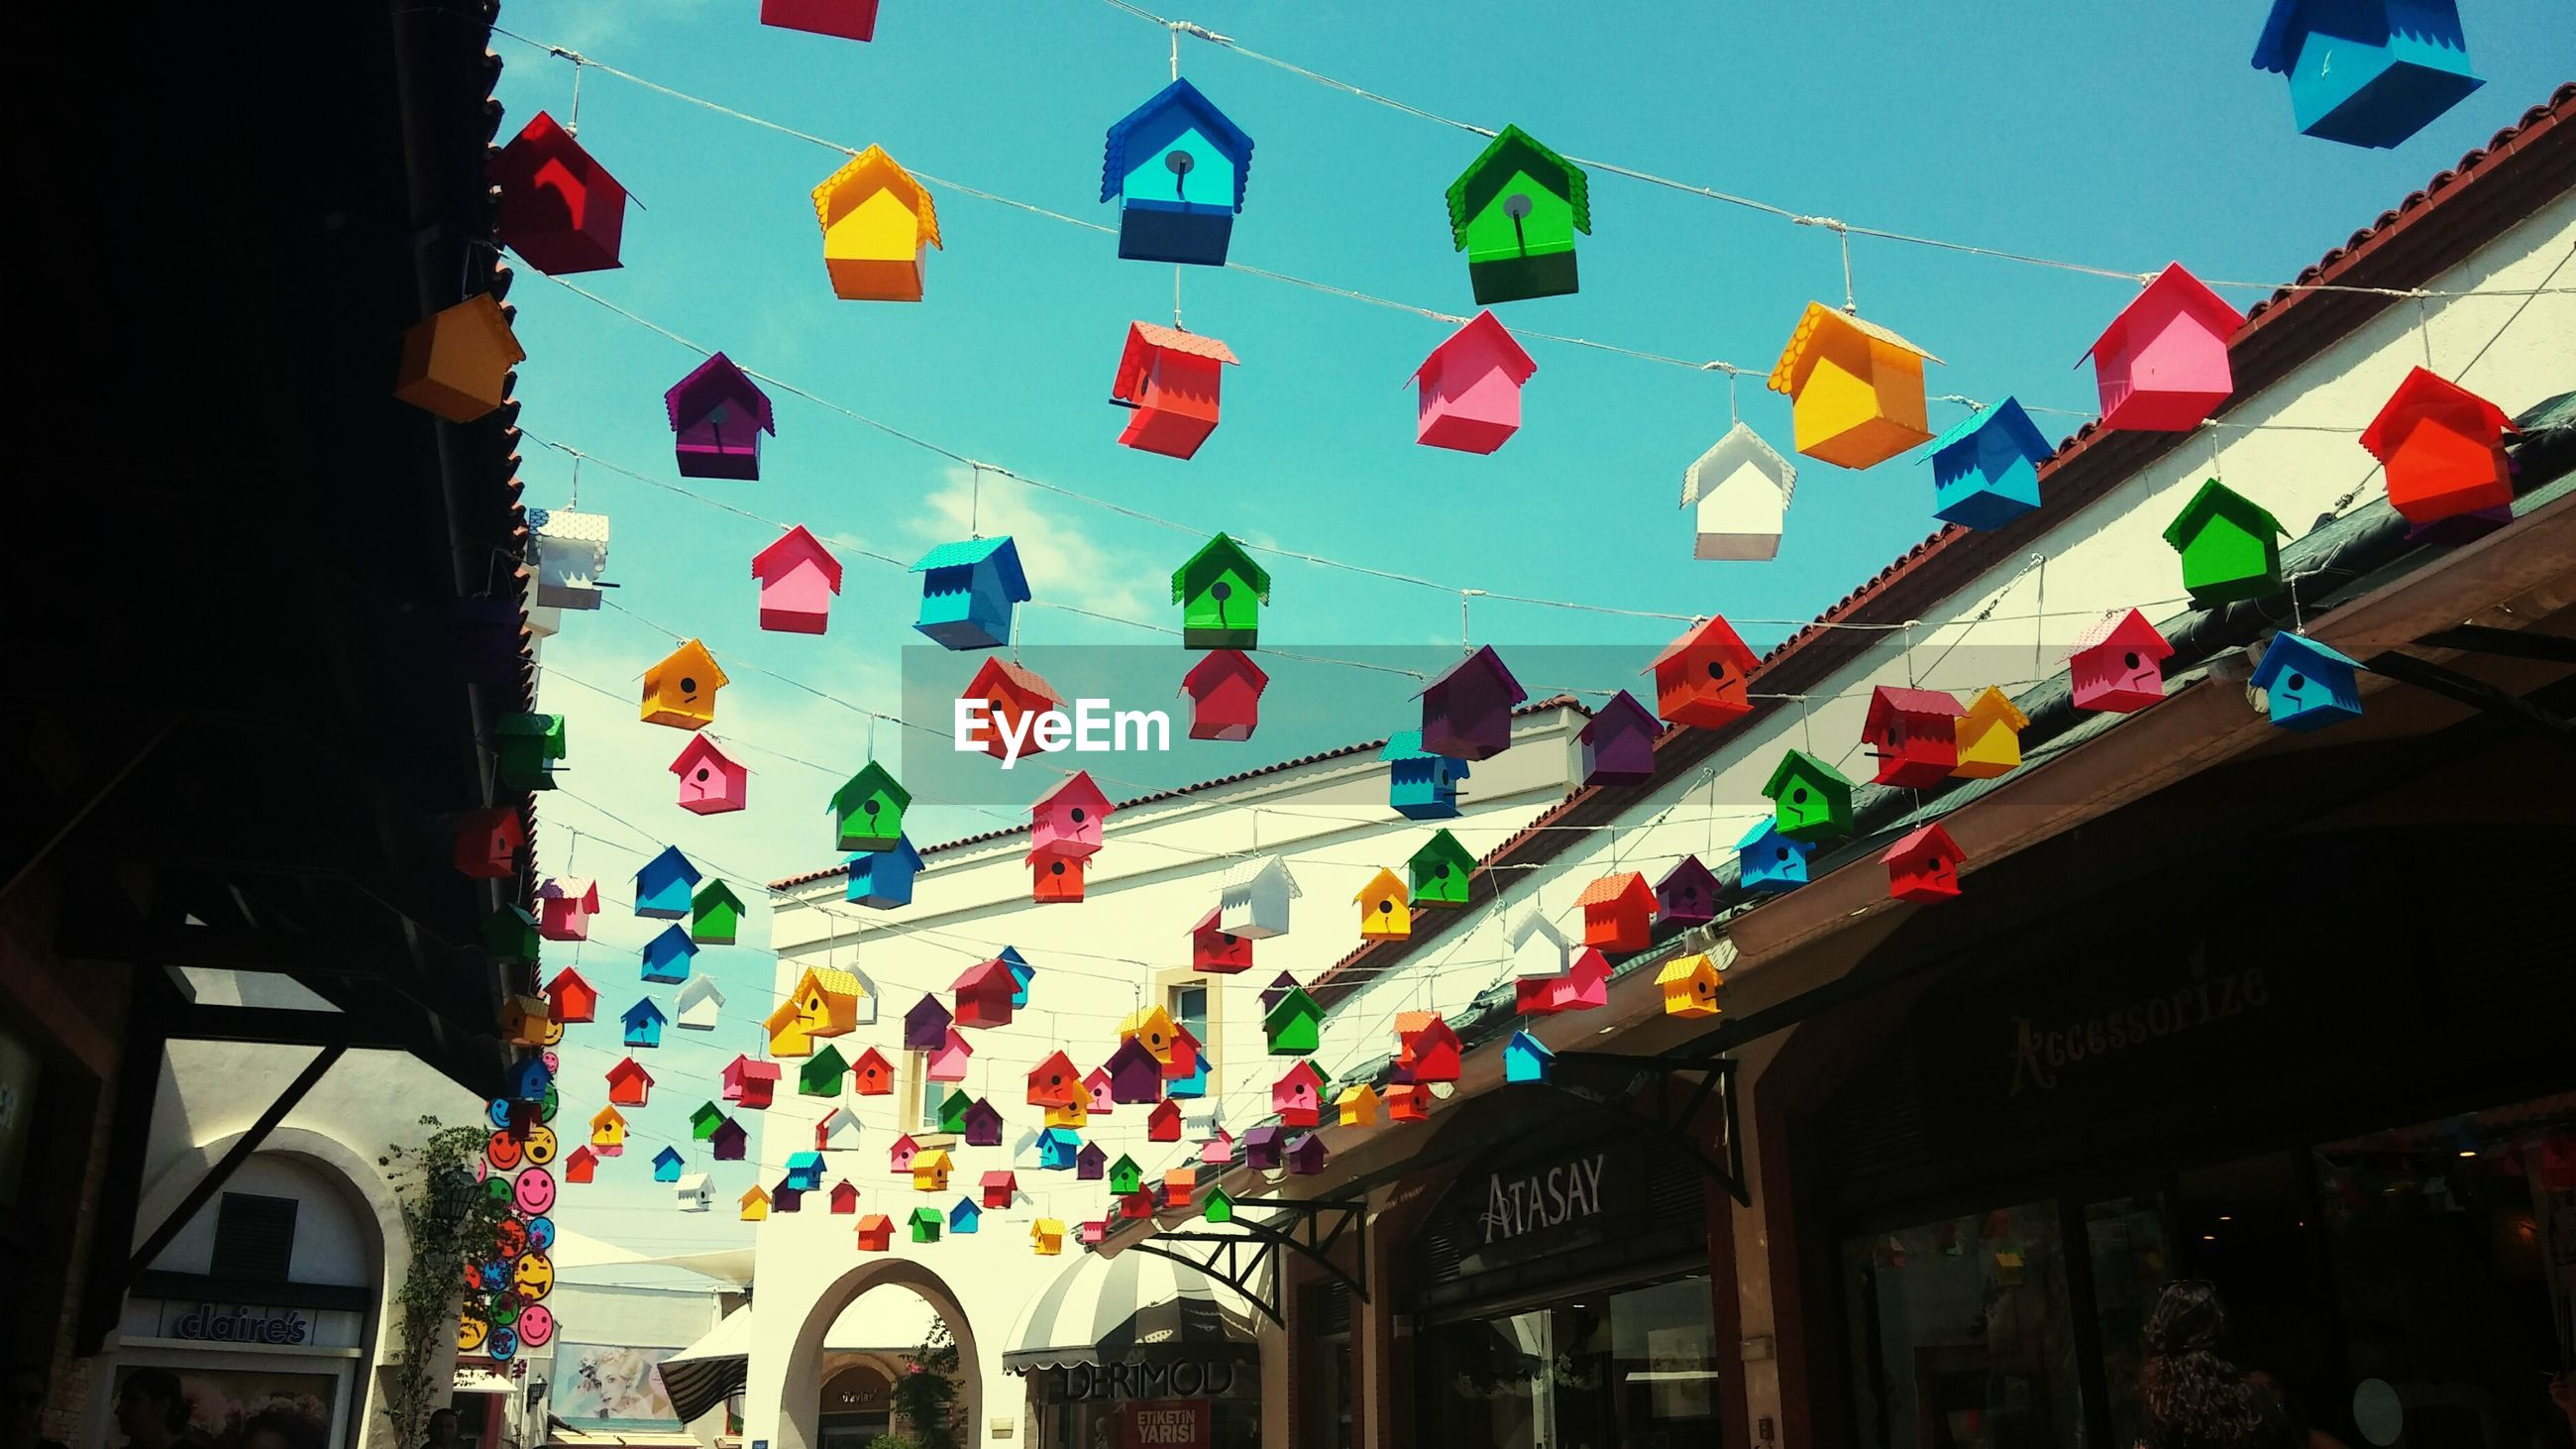 architecture, built structure, building exterior, low angle view, multi colored, hanging, flag, decoration, sky, lantern, window, building, city, lighting equipment, street light, blue, residential building, day, outdoors, in a row